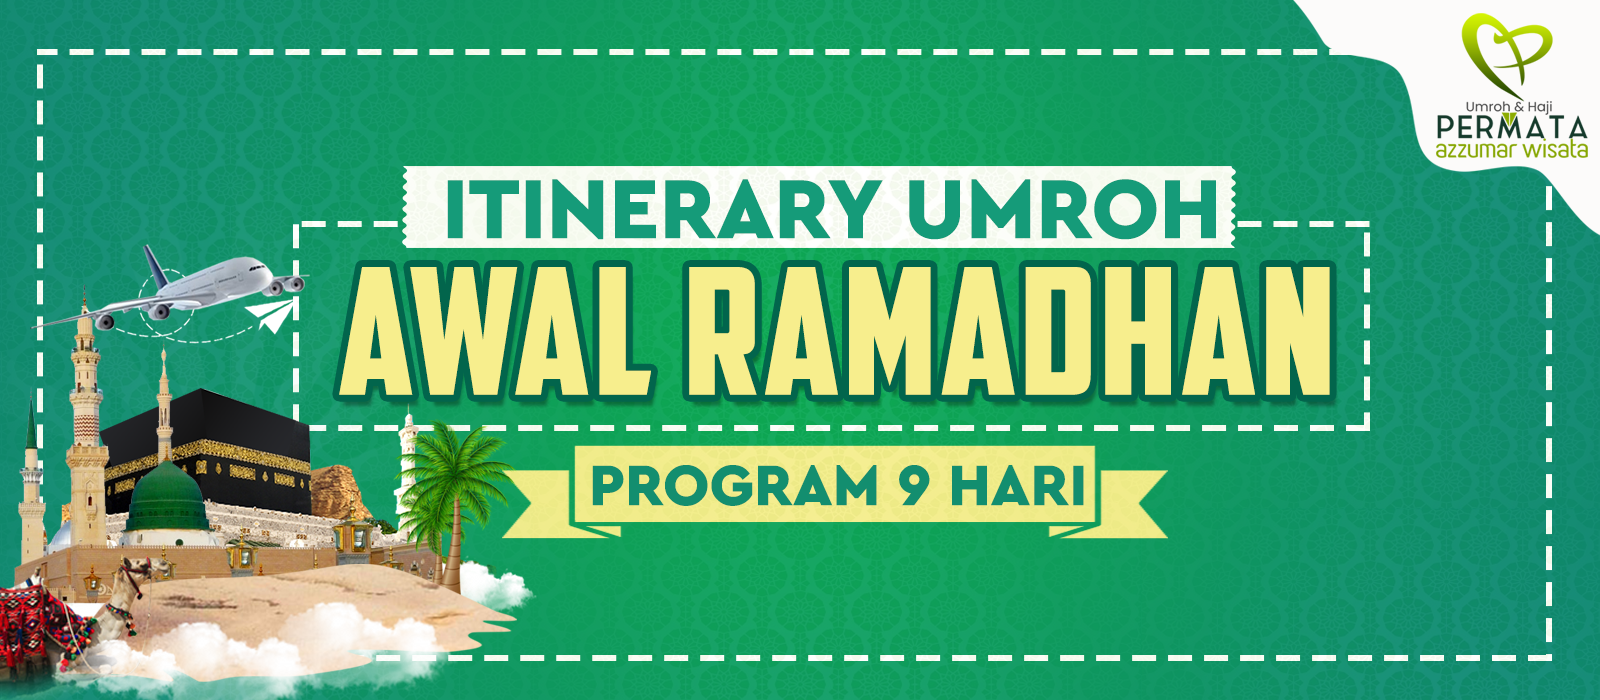 program Umroh awal Ramadhan 2020 program 9 hari